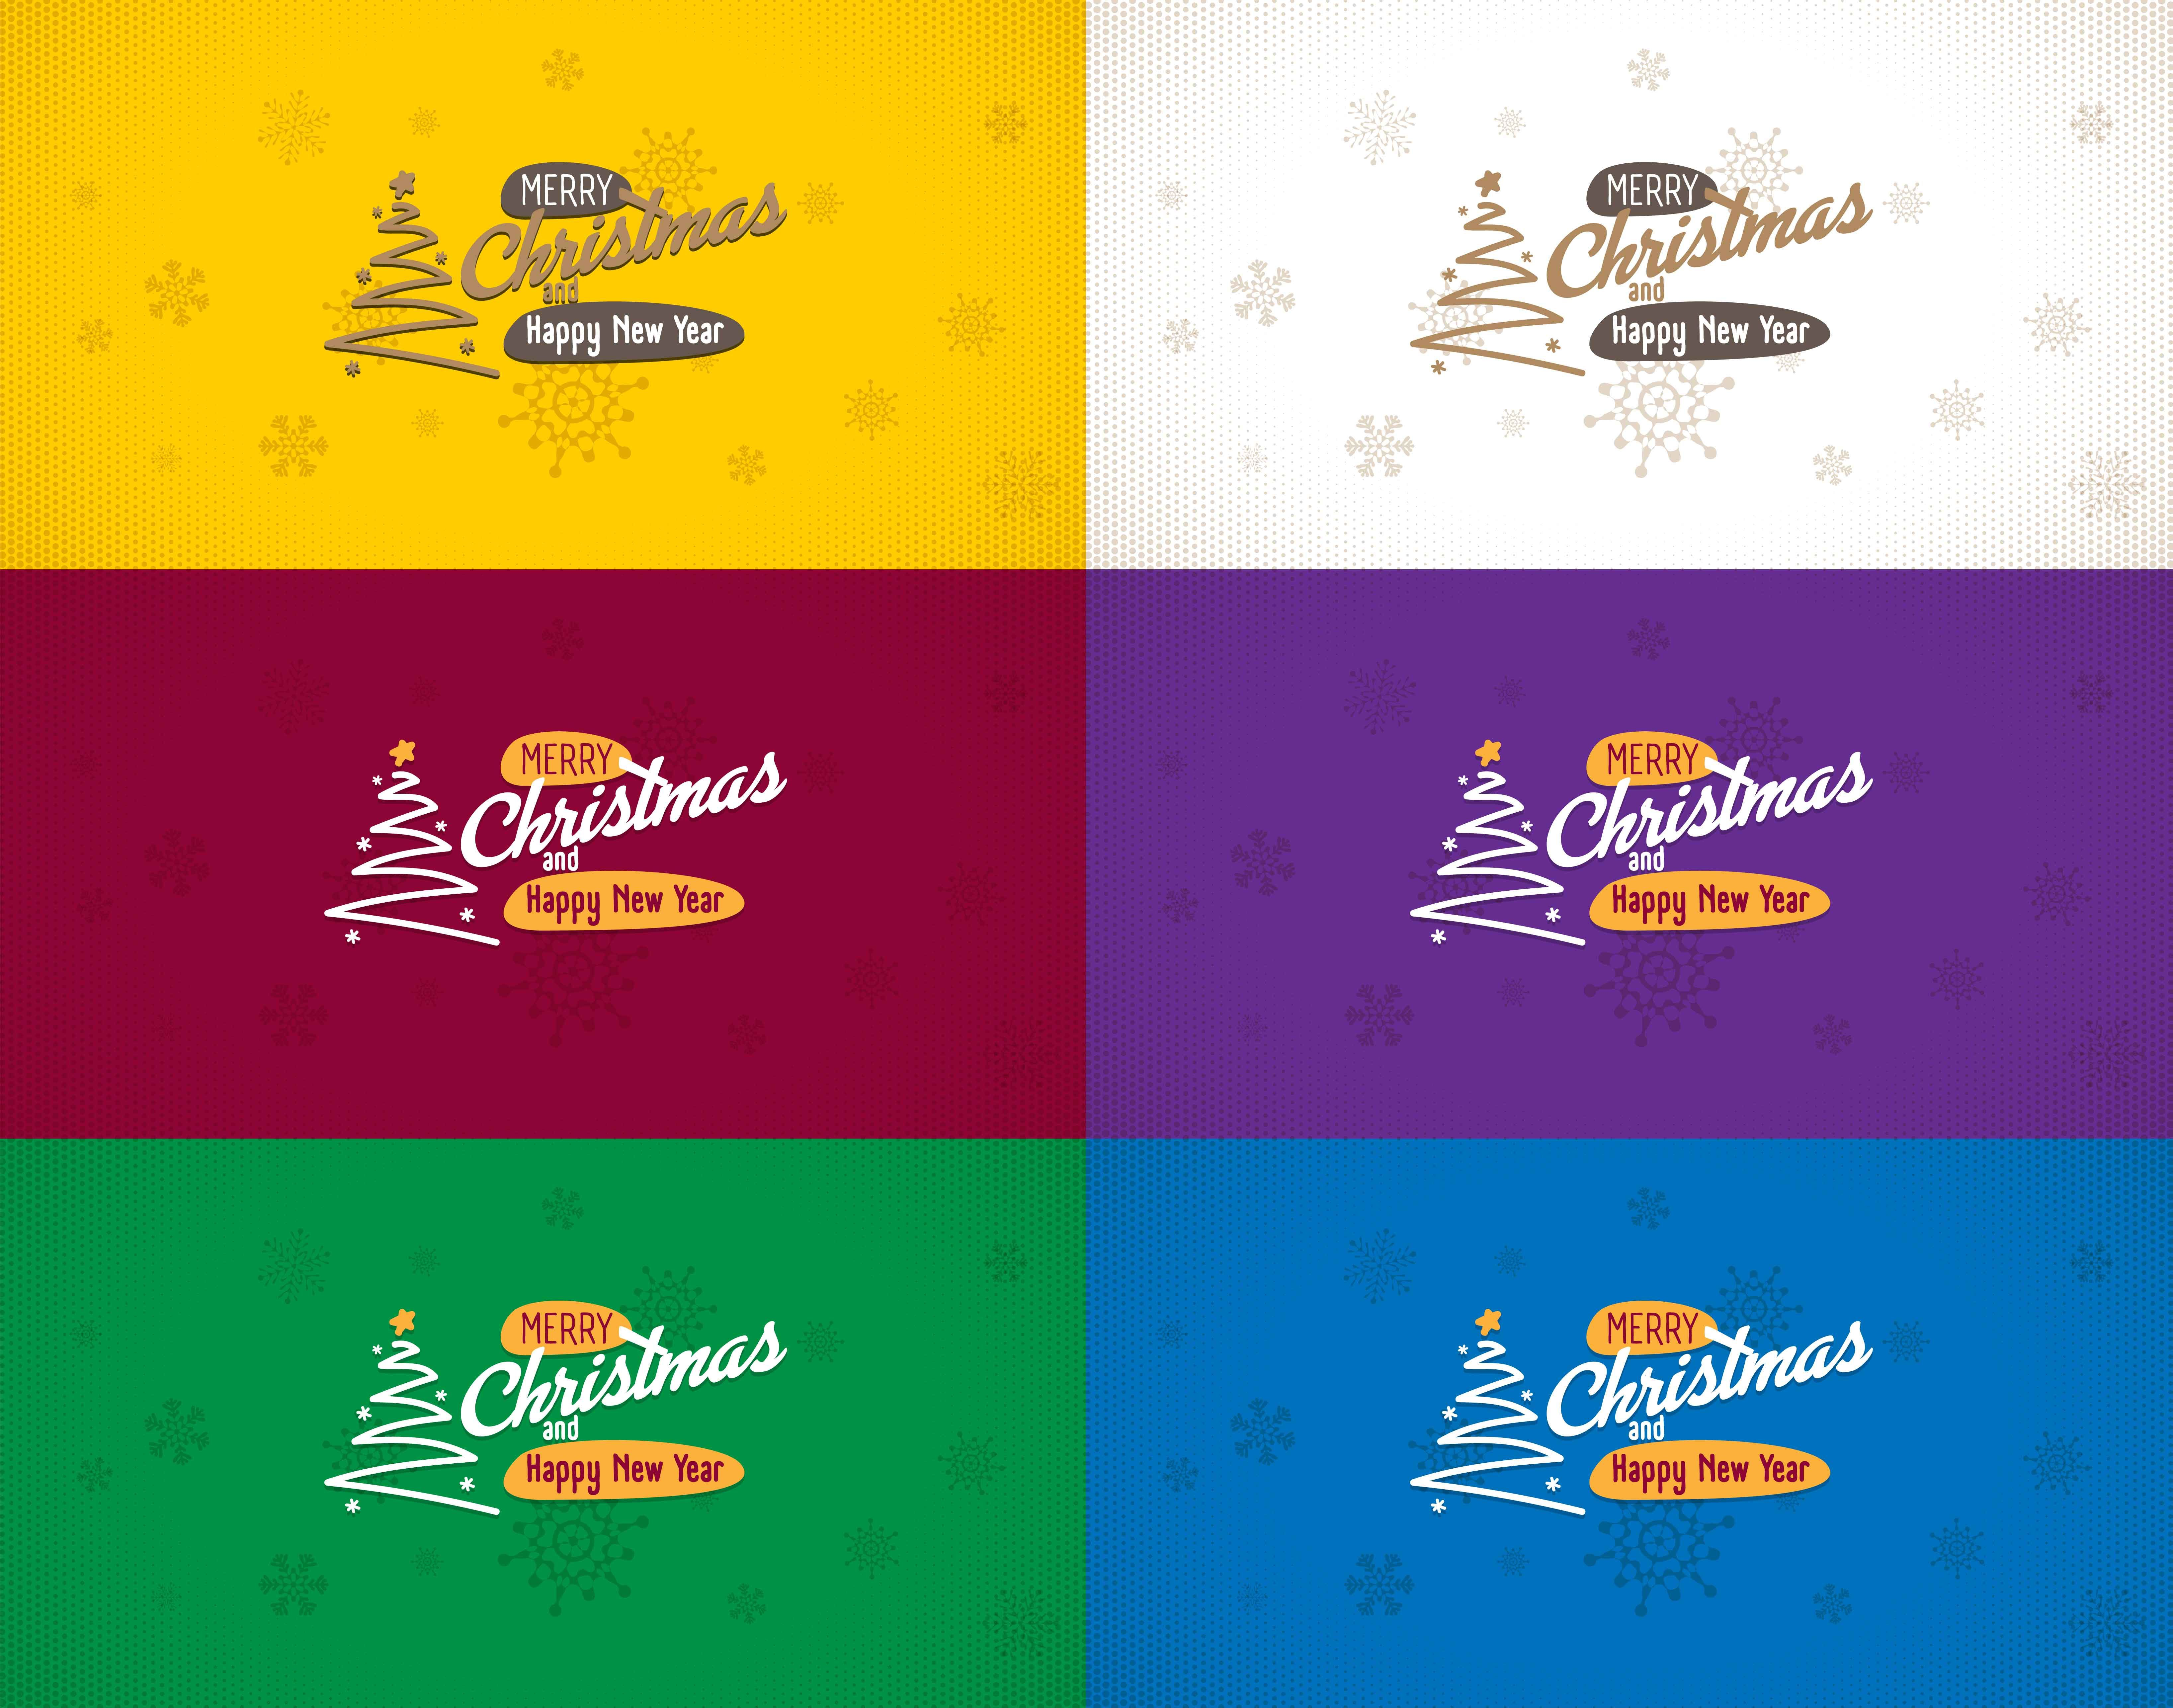 Merry christmas and happy new year greeting cards set merry new merry christmas and happy new year greeting cards set merry new year christmas greeting card vector design set corporate color editable m4hsunfo